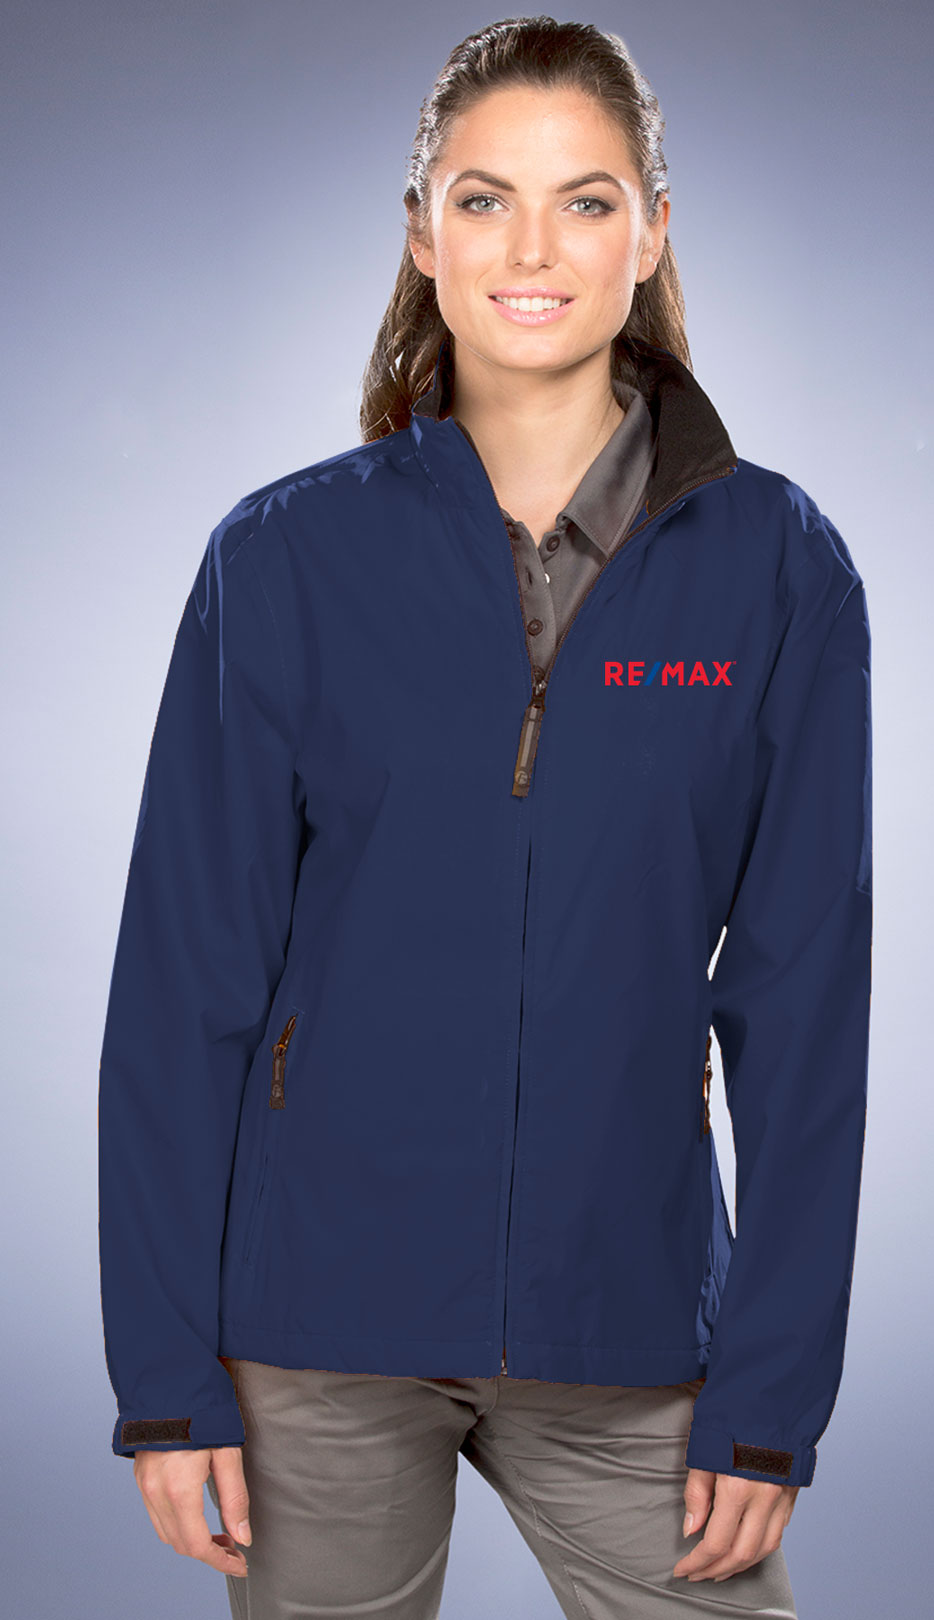 Women's Lightweight Performance Spring Jacket